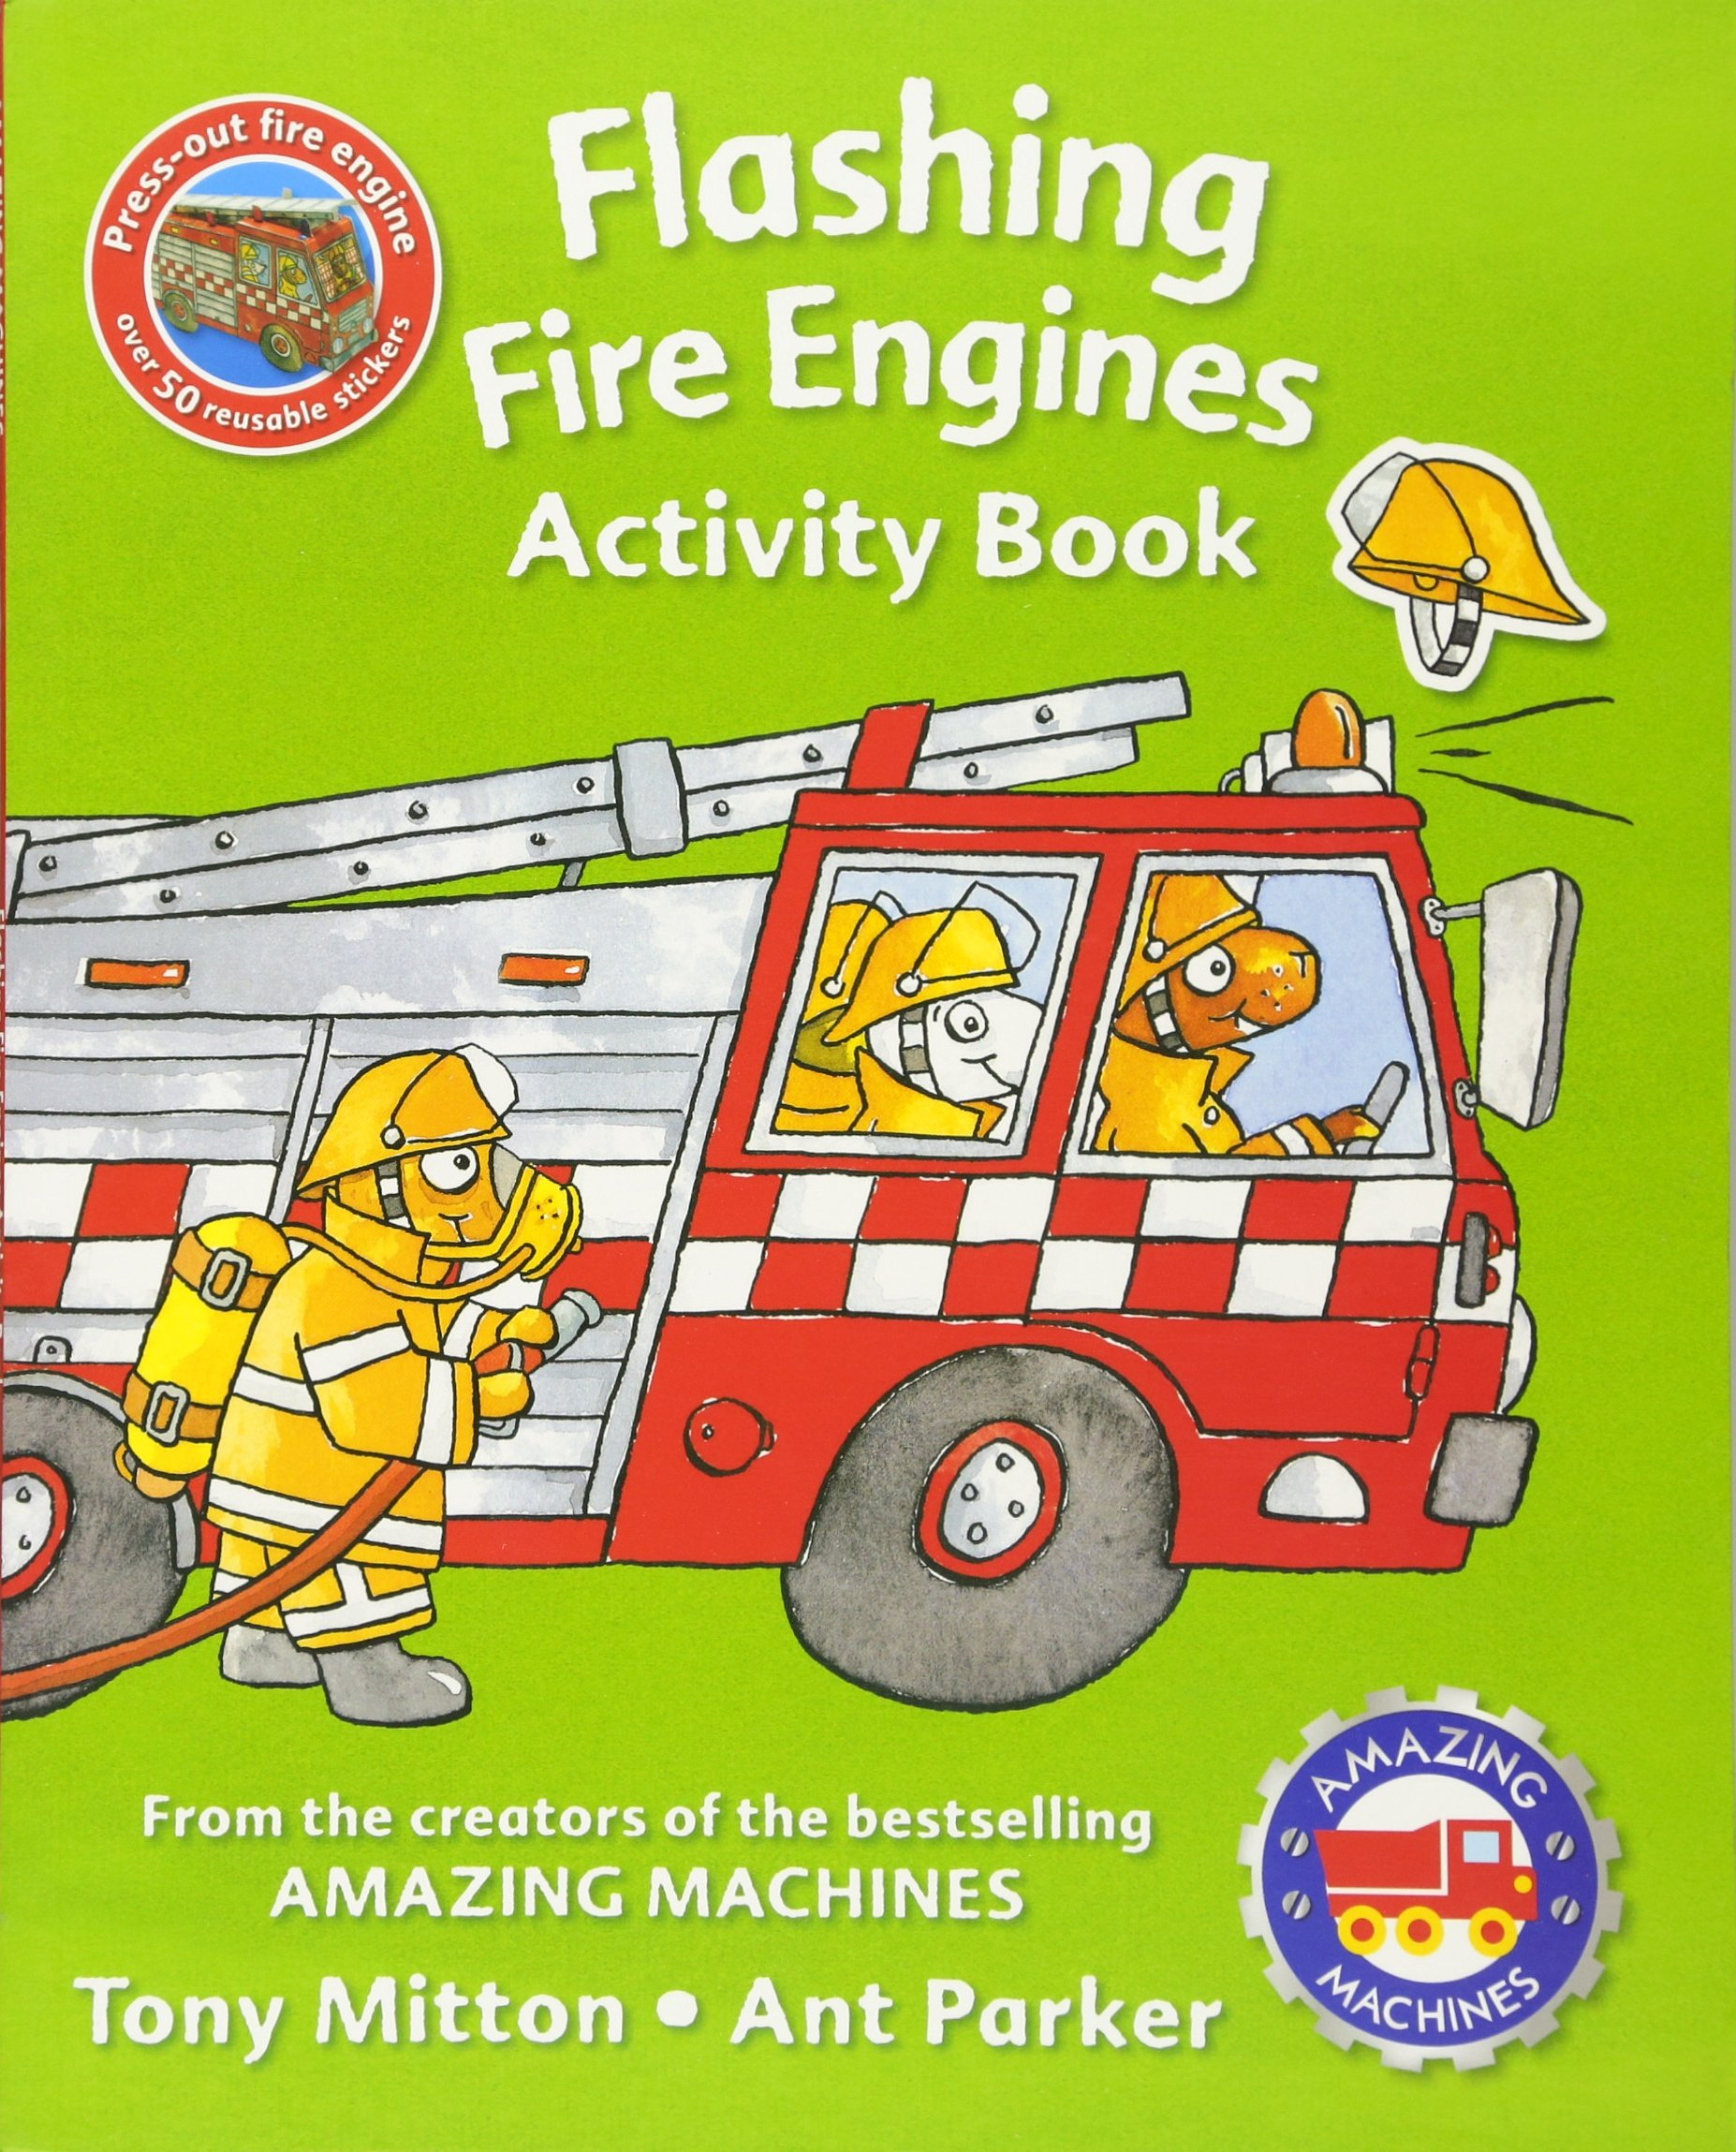 Amazing Machines Flashing Fire Engines Activity Book: Tony Mitton ...